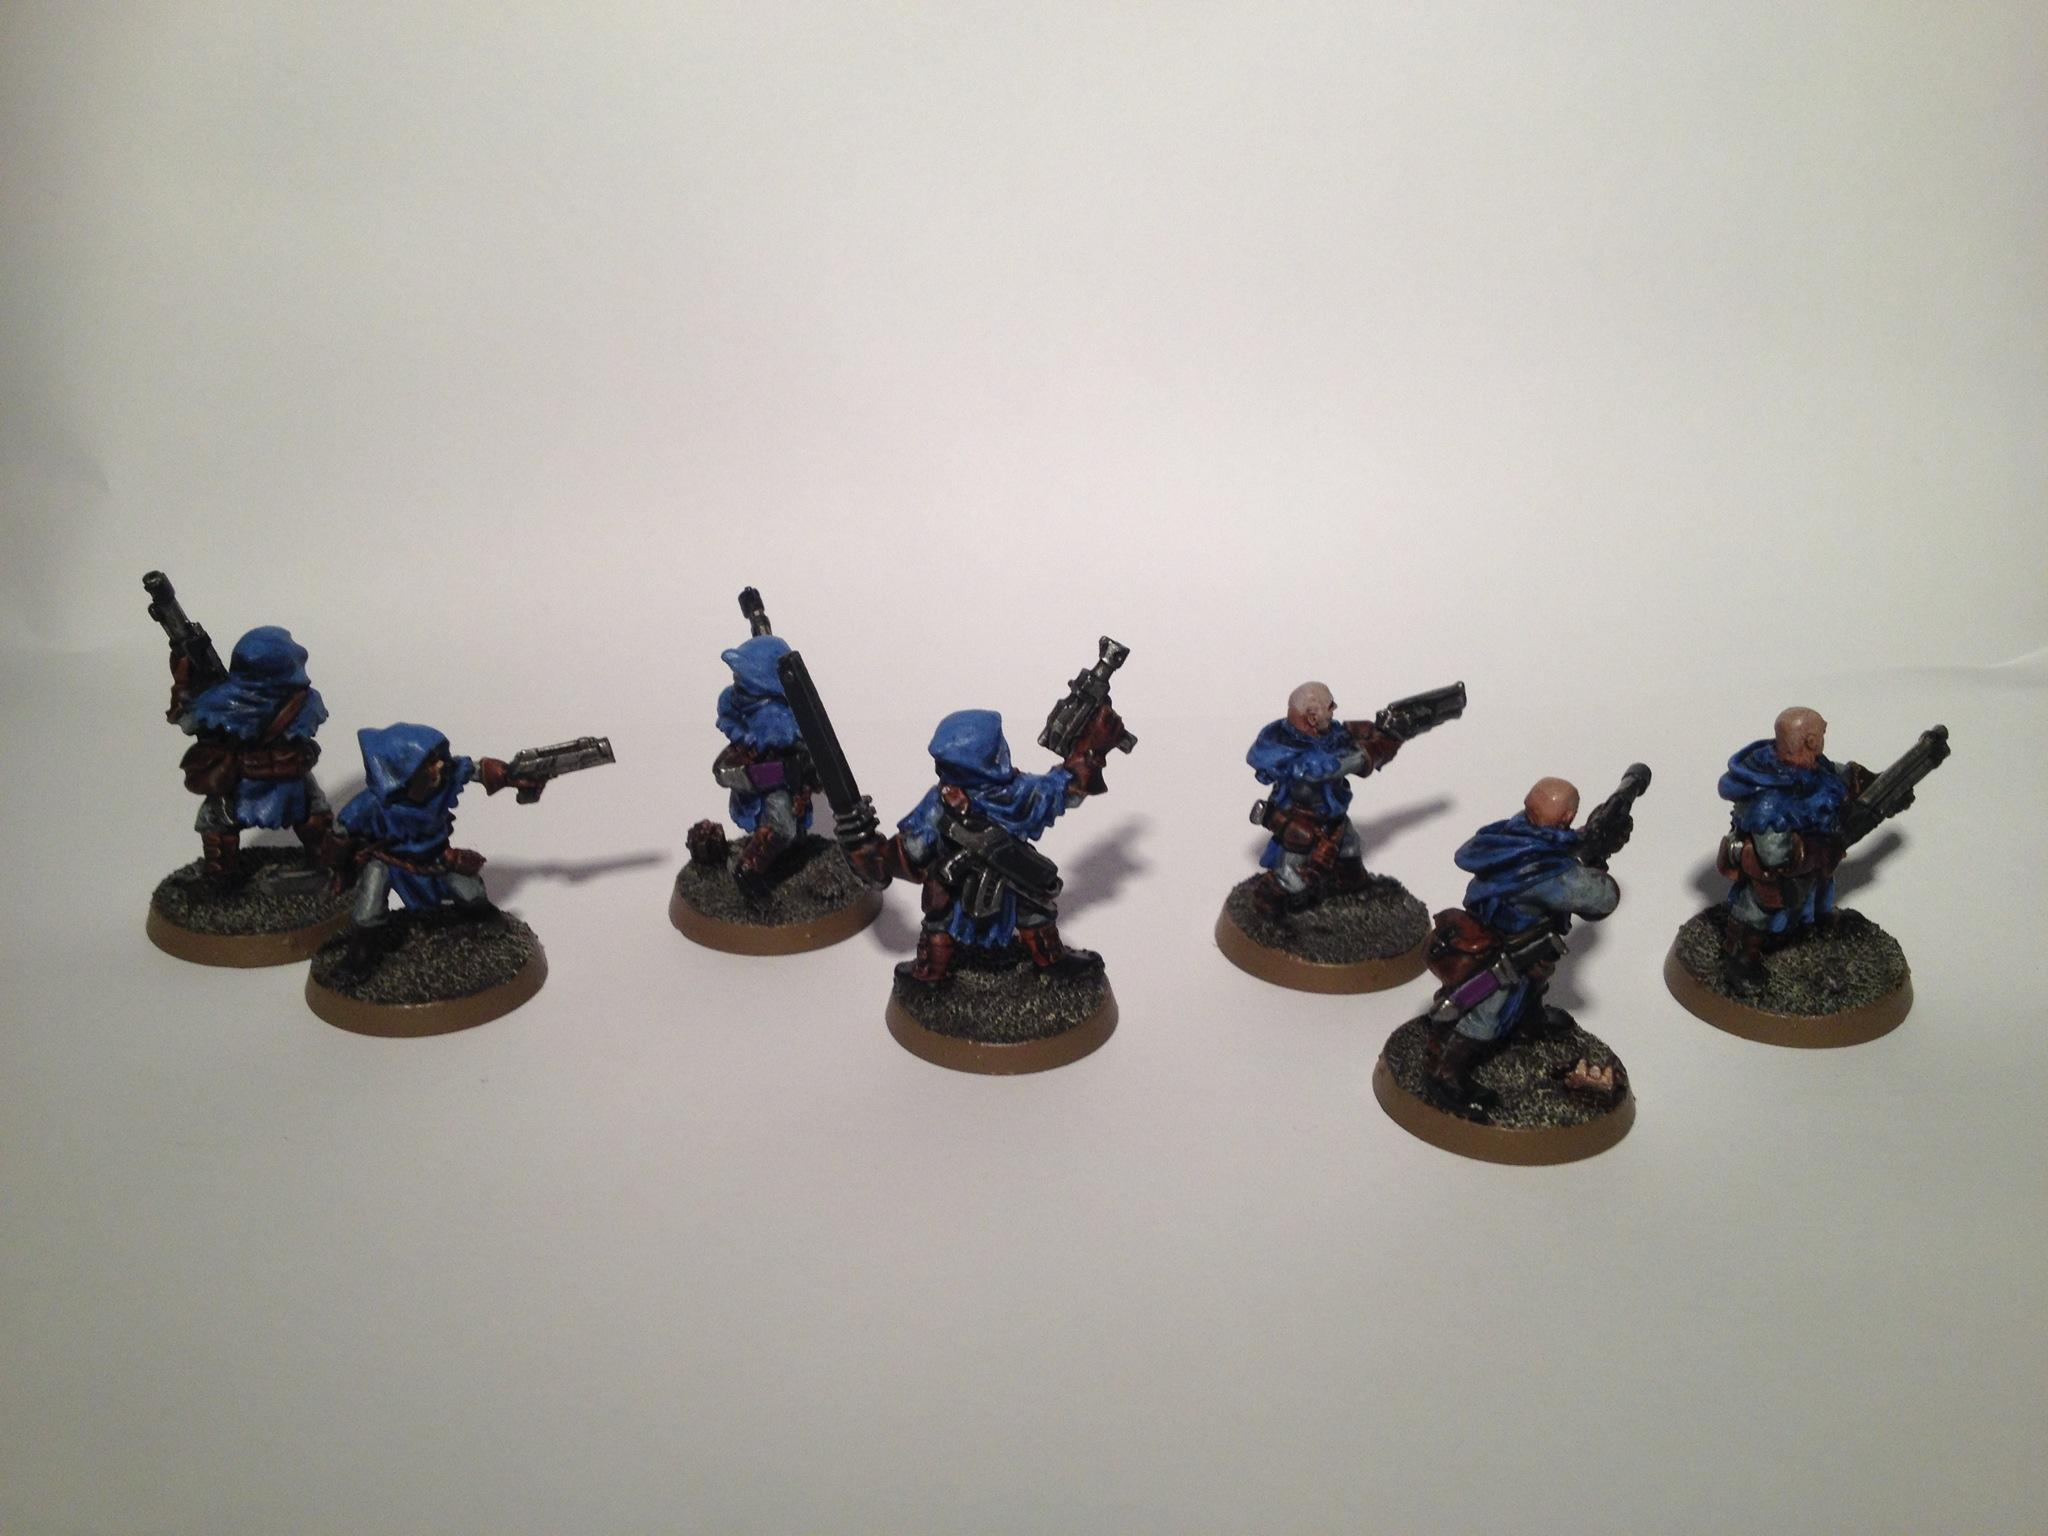 Cawdor, Conversion, Gang, Guard, House Cawdor, Imperial Guard, Infantry, Necromunda, Platoon, Squad, Warhammer 40,000